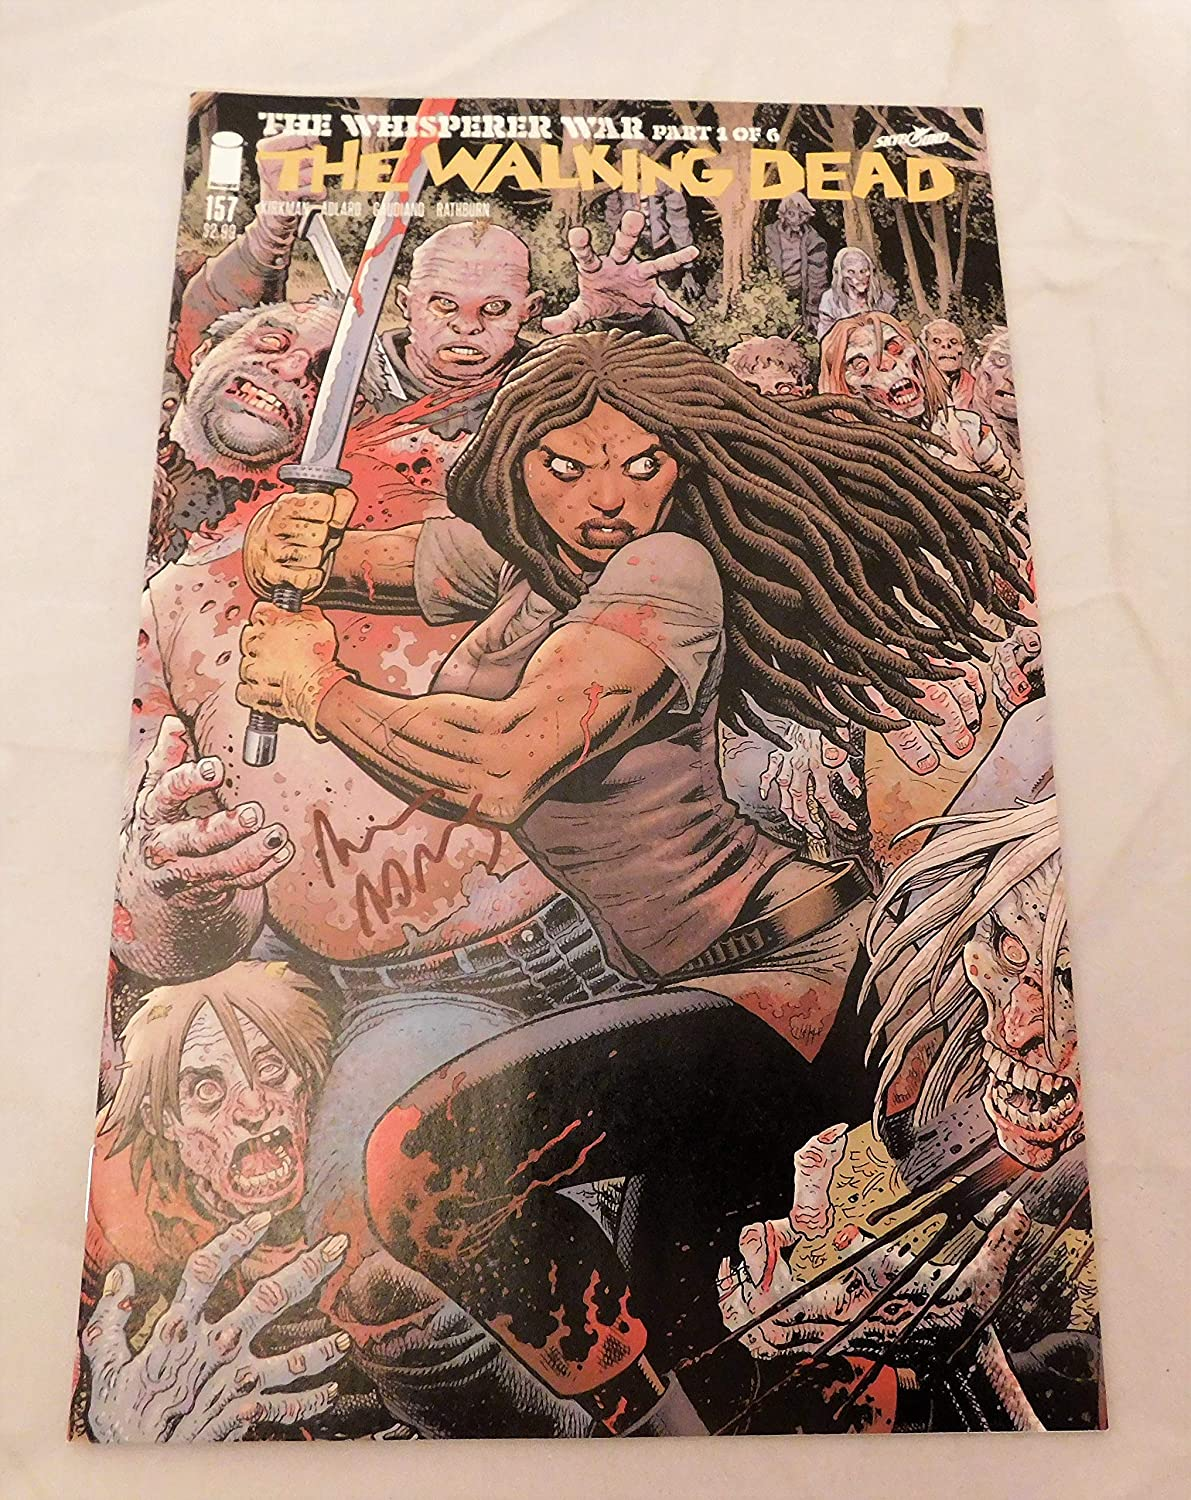 Walking Dead #157 Whistperer War Ranking TOP3 Max 61% OFF Signed 1st Print Autographed